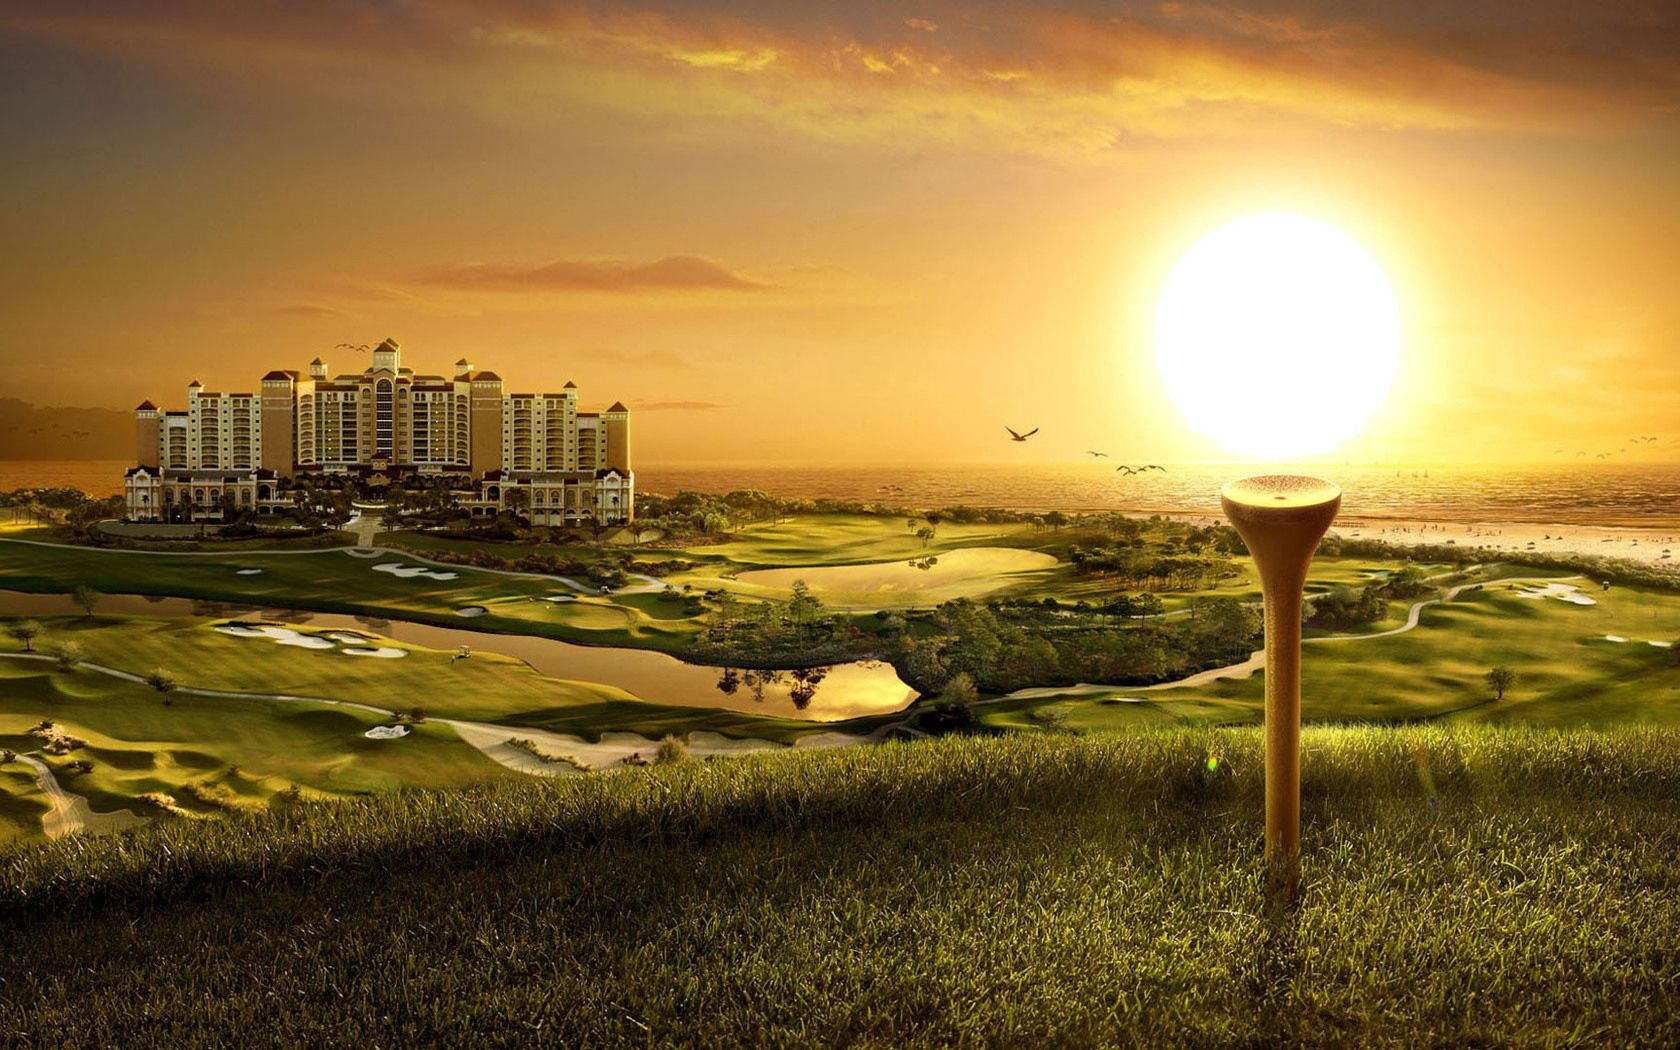 72793 download wallpaper Funny, Nature, Sunset, Fields, Art, Golf, Building, Evening, Original screensavers and pictures for free